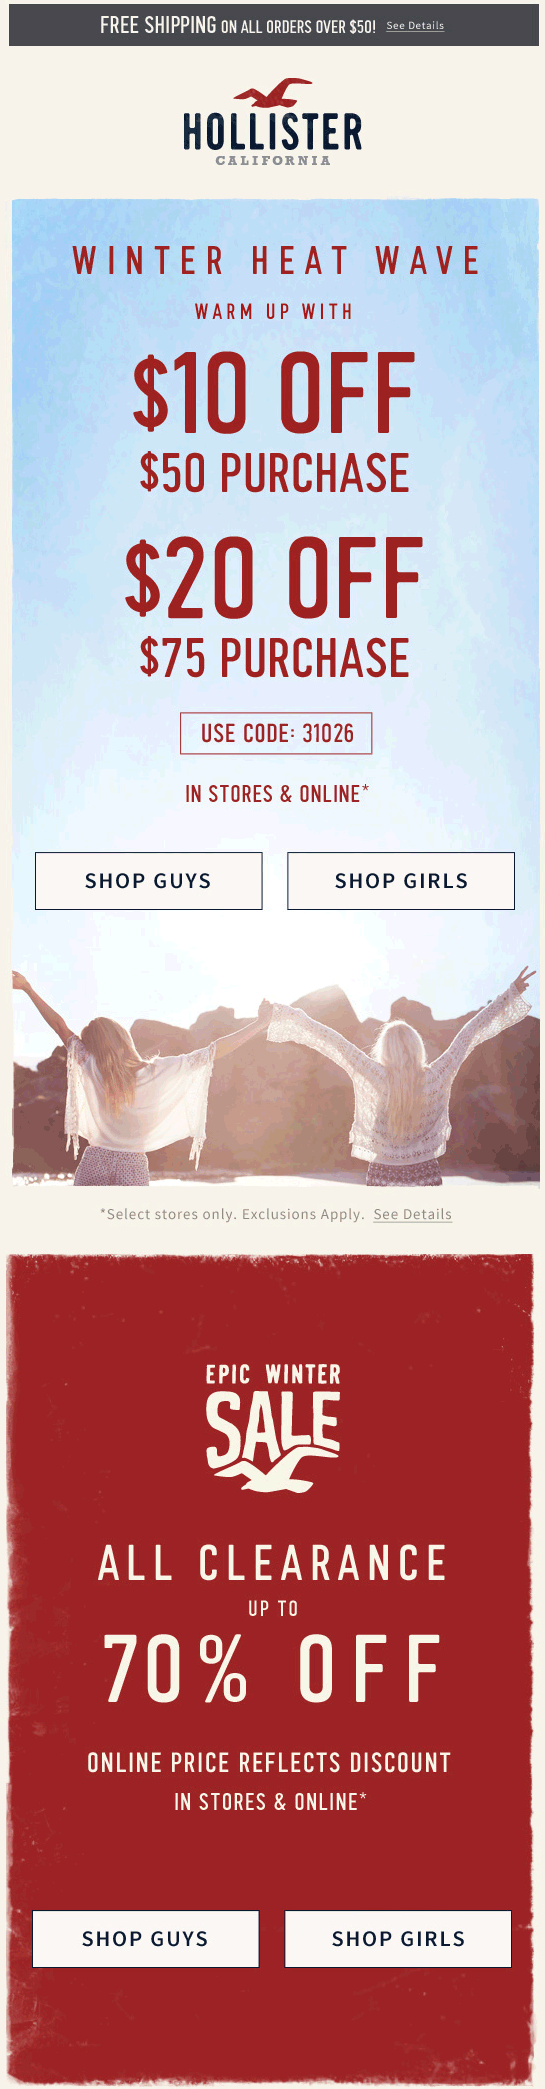 Hollister Coupon June 2017 $10 off $50 & more at Hollister, or online via promo code 31026